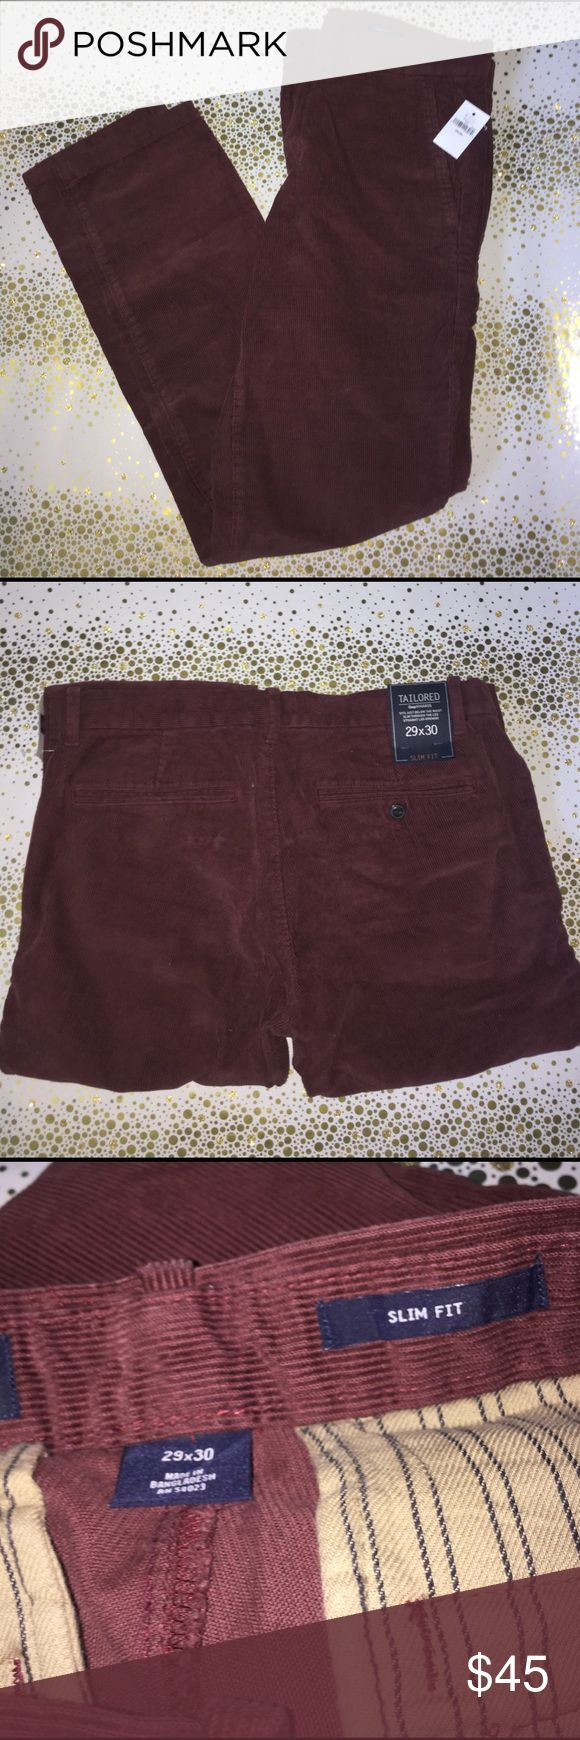 Gap Tailored Slim Fit Khakis (maroon) Suede like texture. Brand new with tags GAP Pants Chinos & Khakis